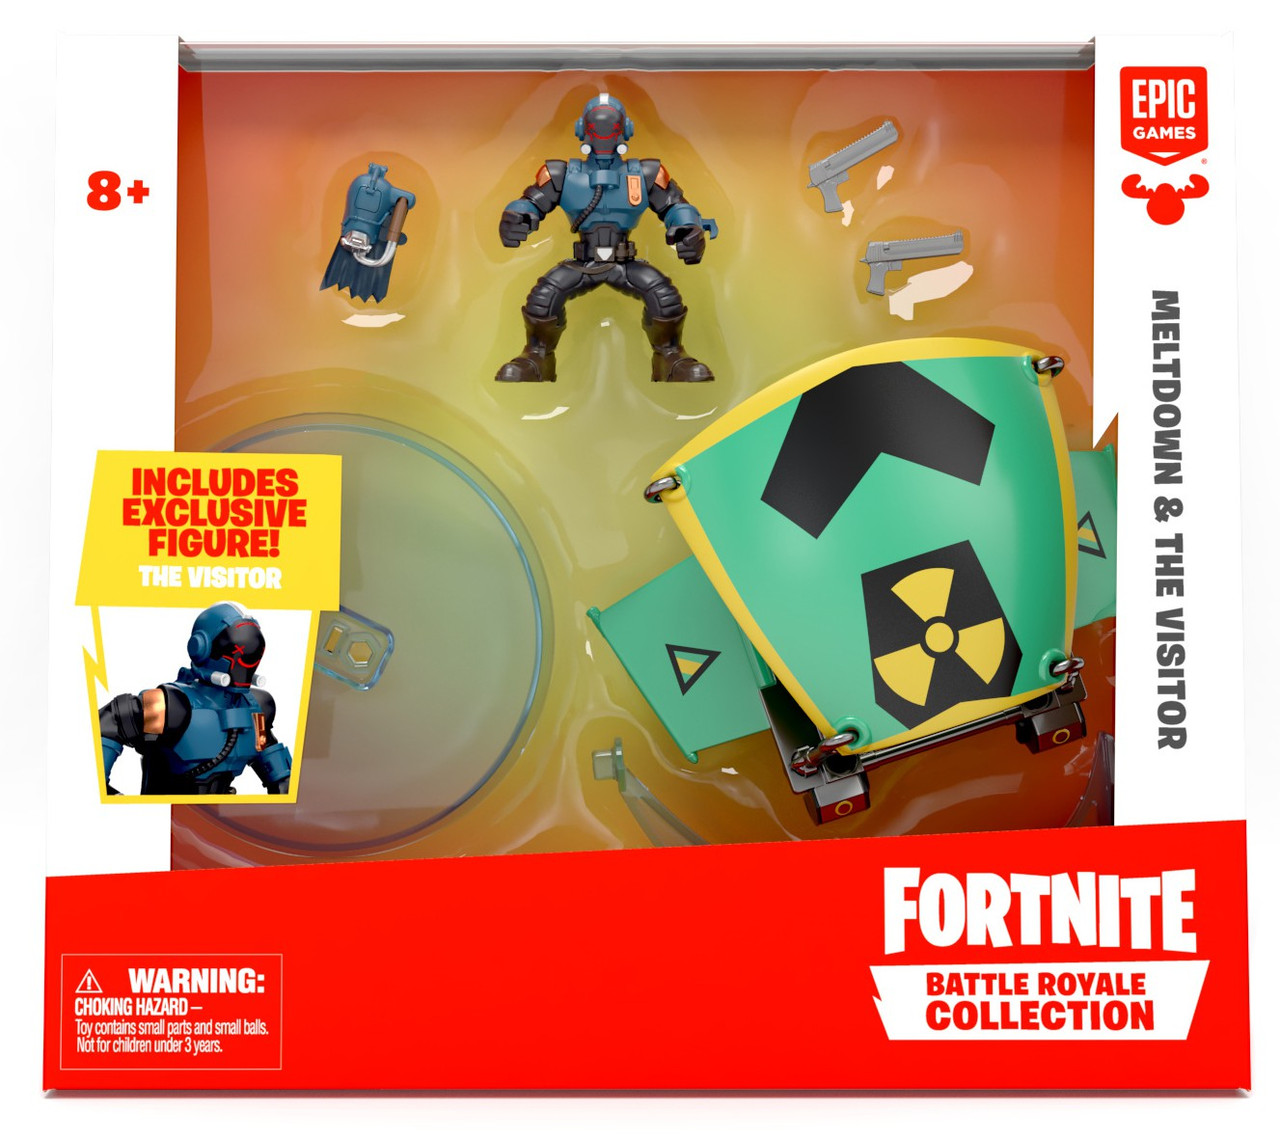 Ragnarok Fortnite Battle Royal Collection Toys Series Action Figure 2/""